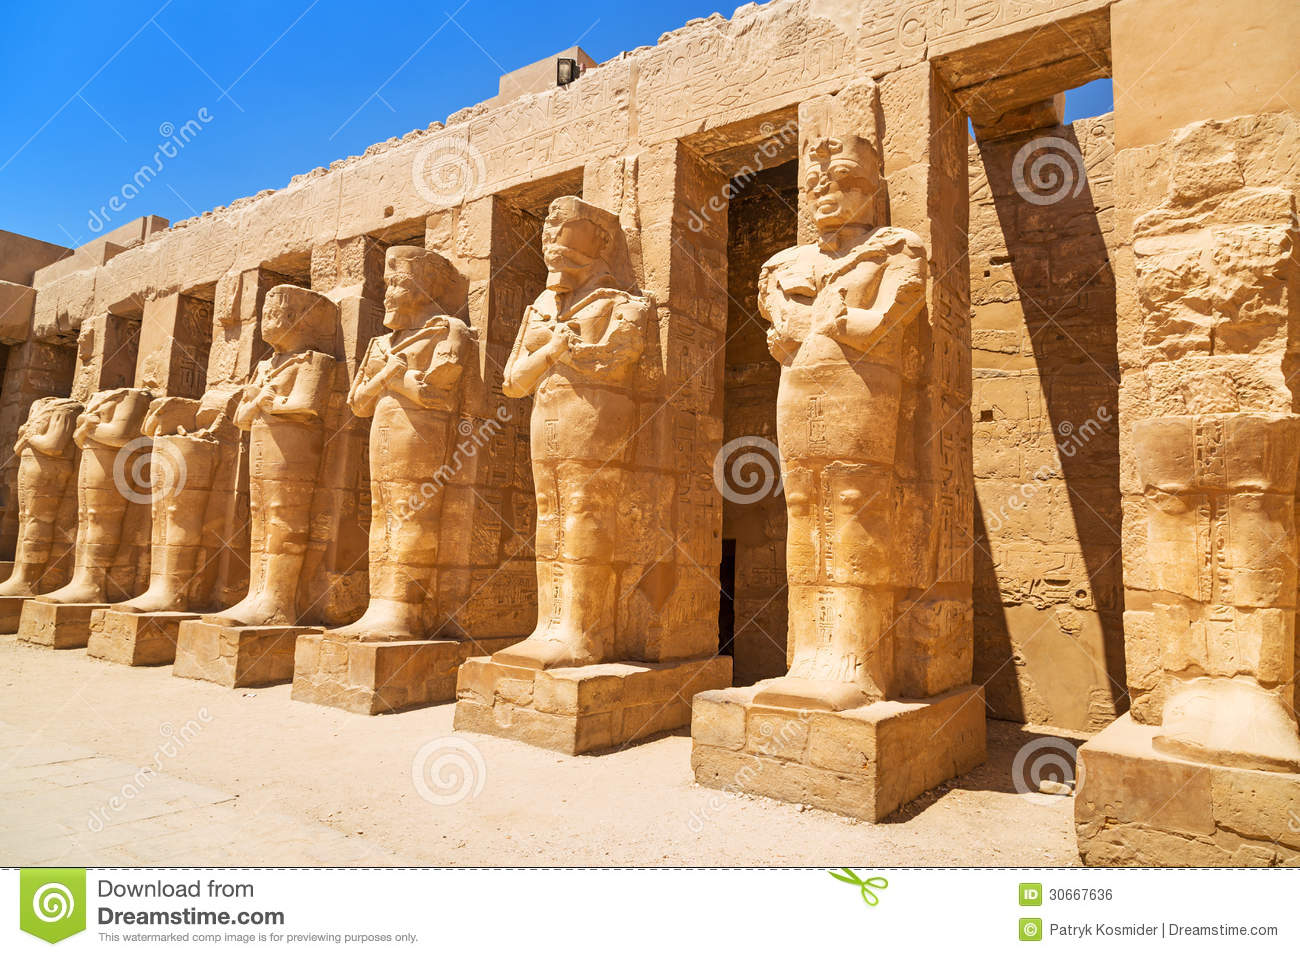 Ancient architecture of Karnak temple in Luxor